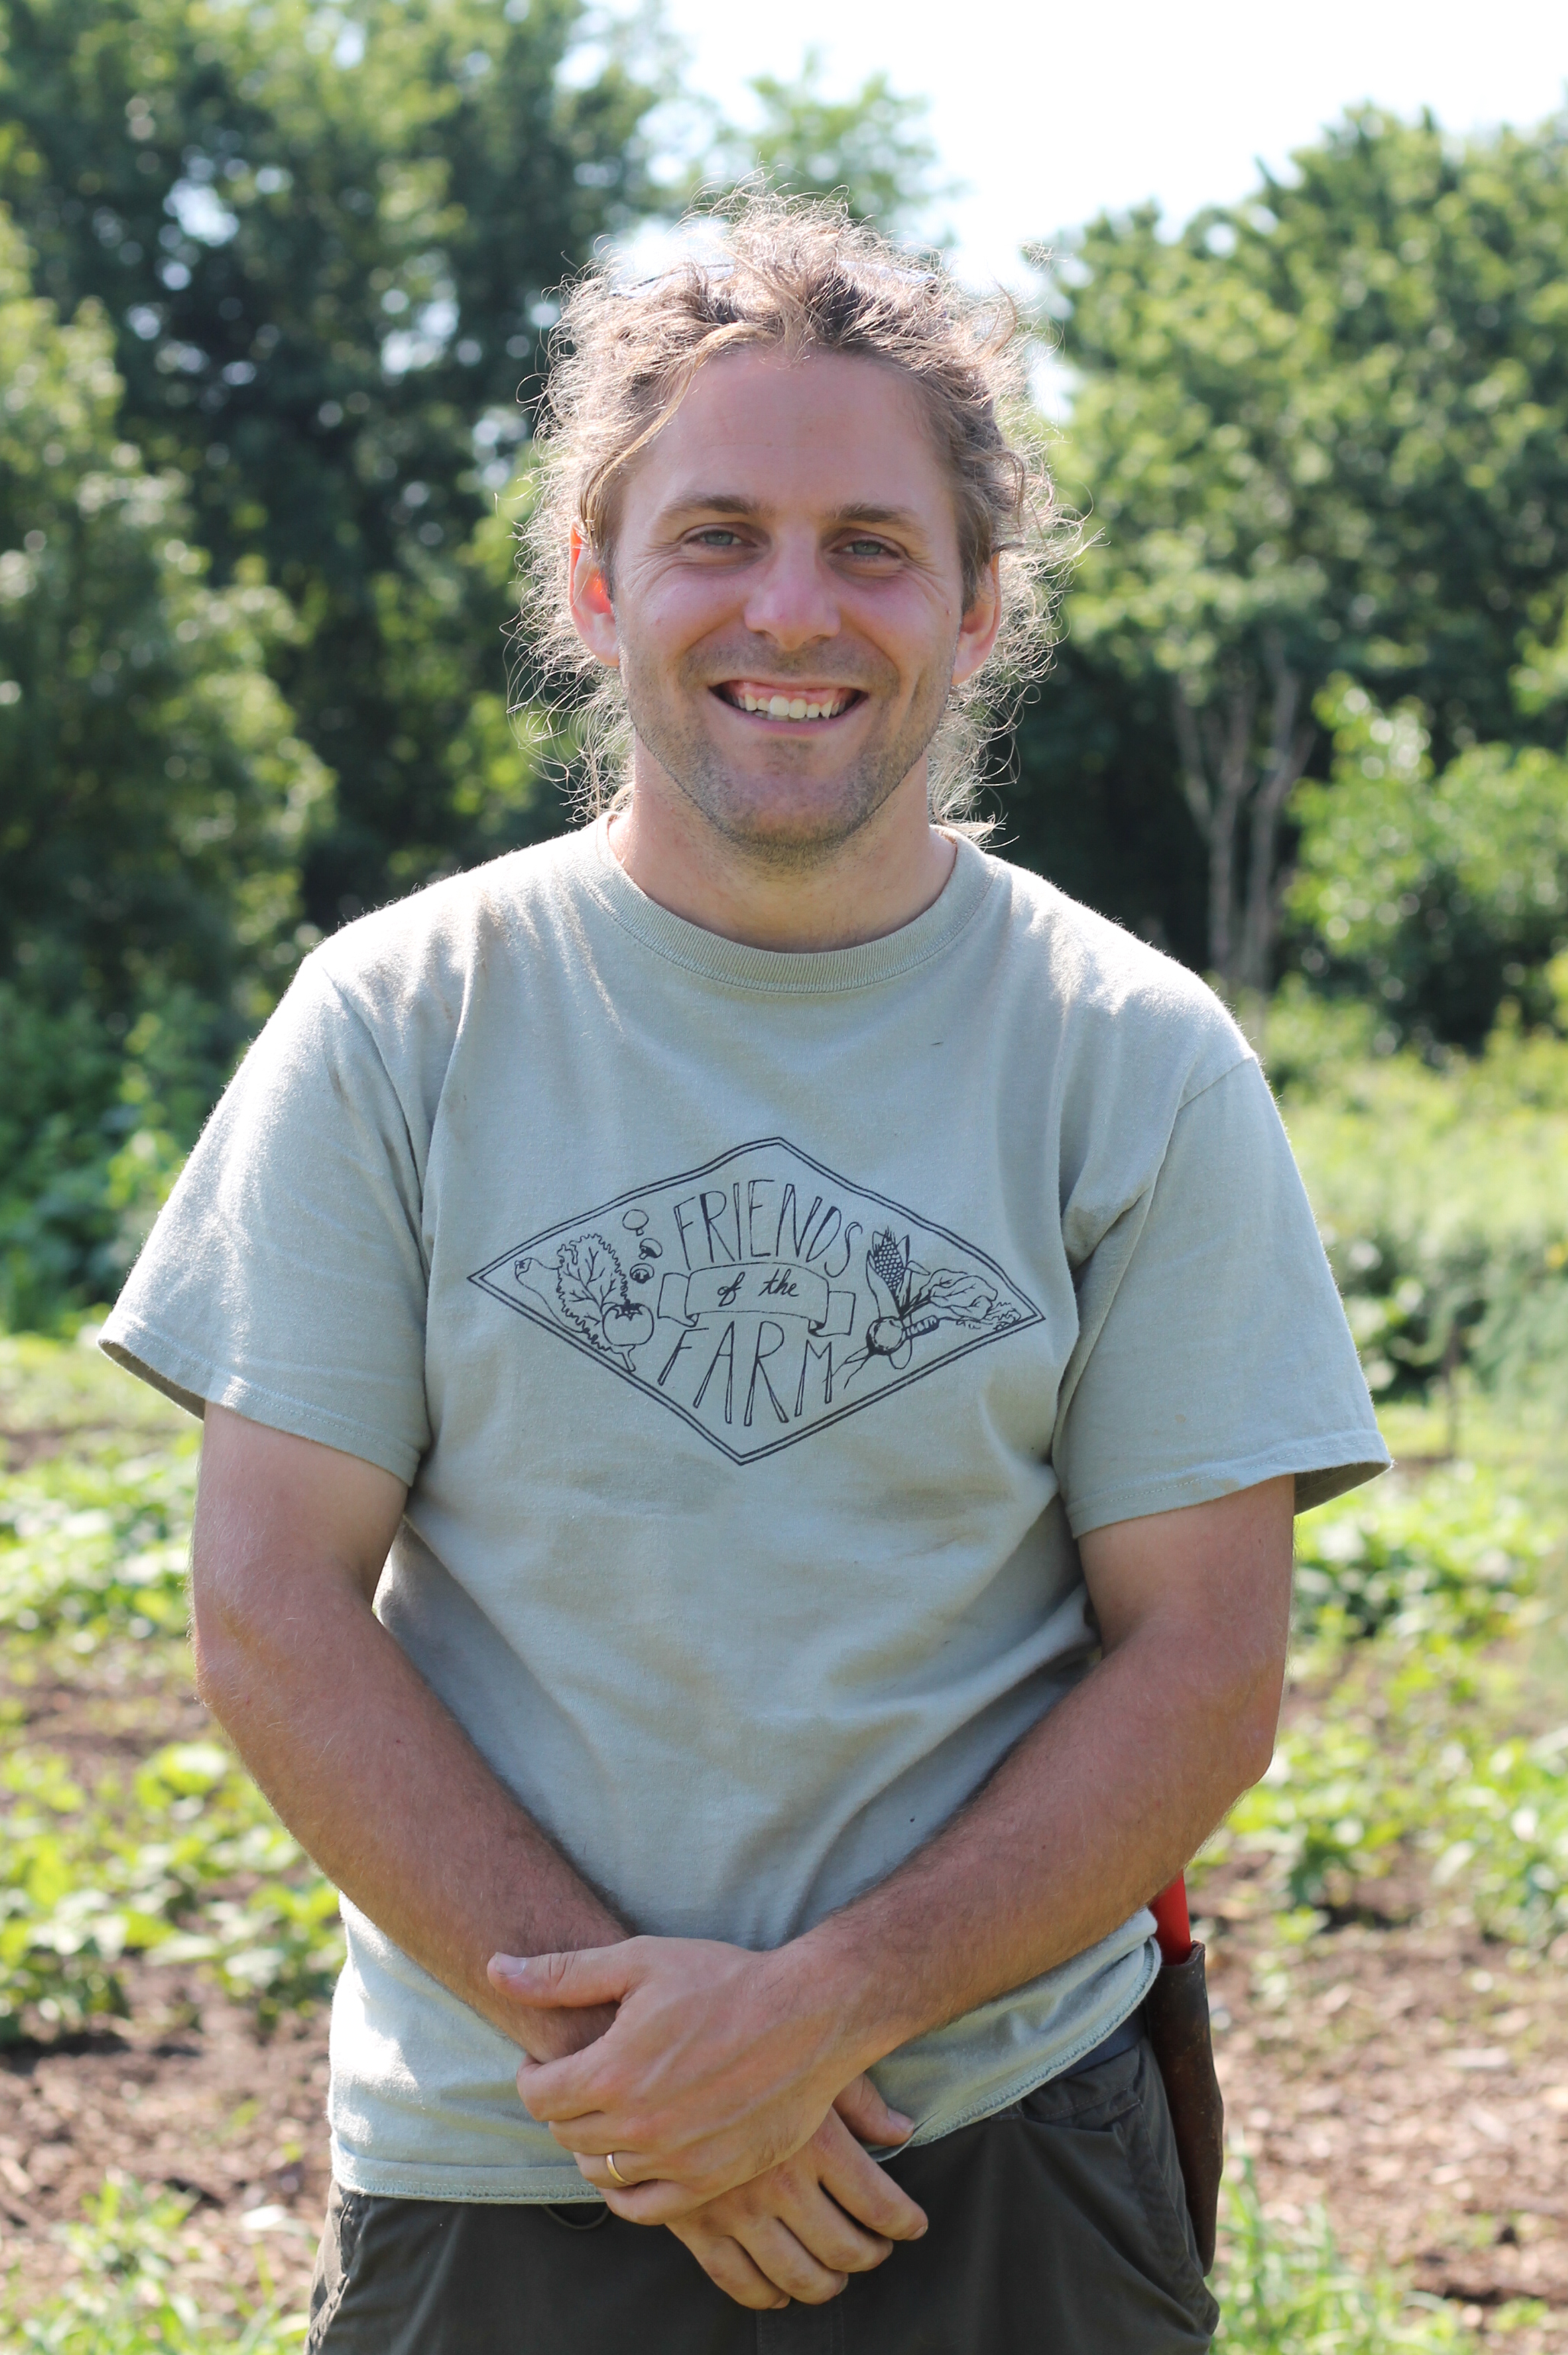 Jon - Jon is bridging the gap between farm and table. He works in the fields and is the Chef/Owner of the Omelette Bar at the Bryn Athyn Bounty Farm Market on Saturday mornings. In 2013 he recieved his PDC from Milkwood permaculture, and has been growing his knowledge about small scale organic farming ever since.